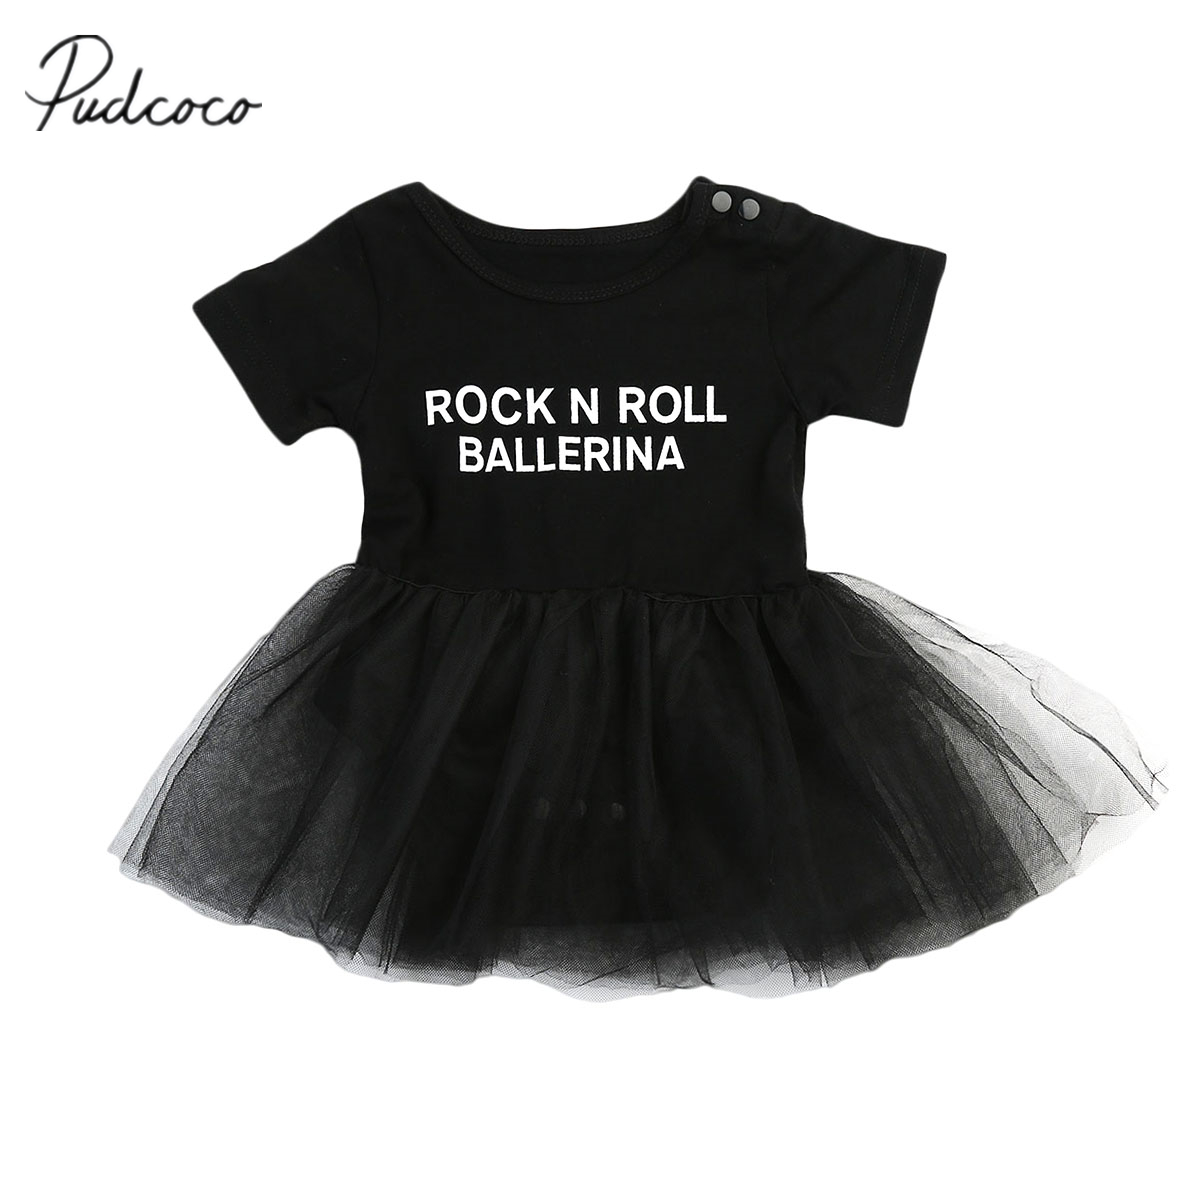 Black dress for baby girl - Pudcoco 2017 Newborn Baby Girls Tulle Ballet Dress Bodysuit Playsuit Outfits One Piece Clothes Black